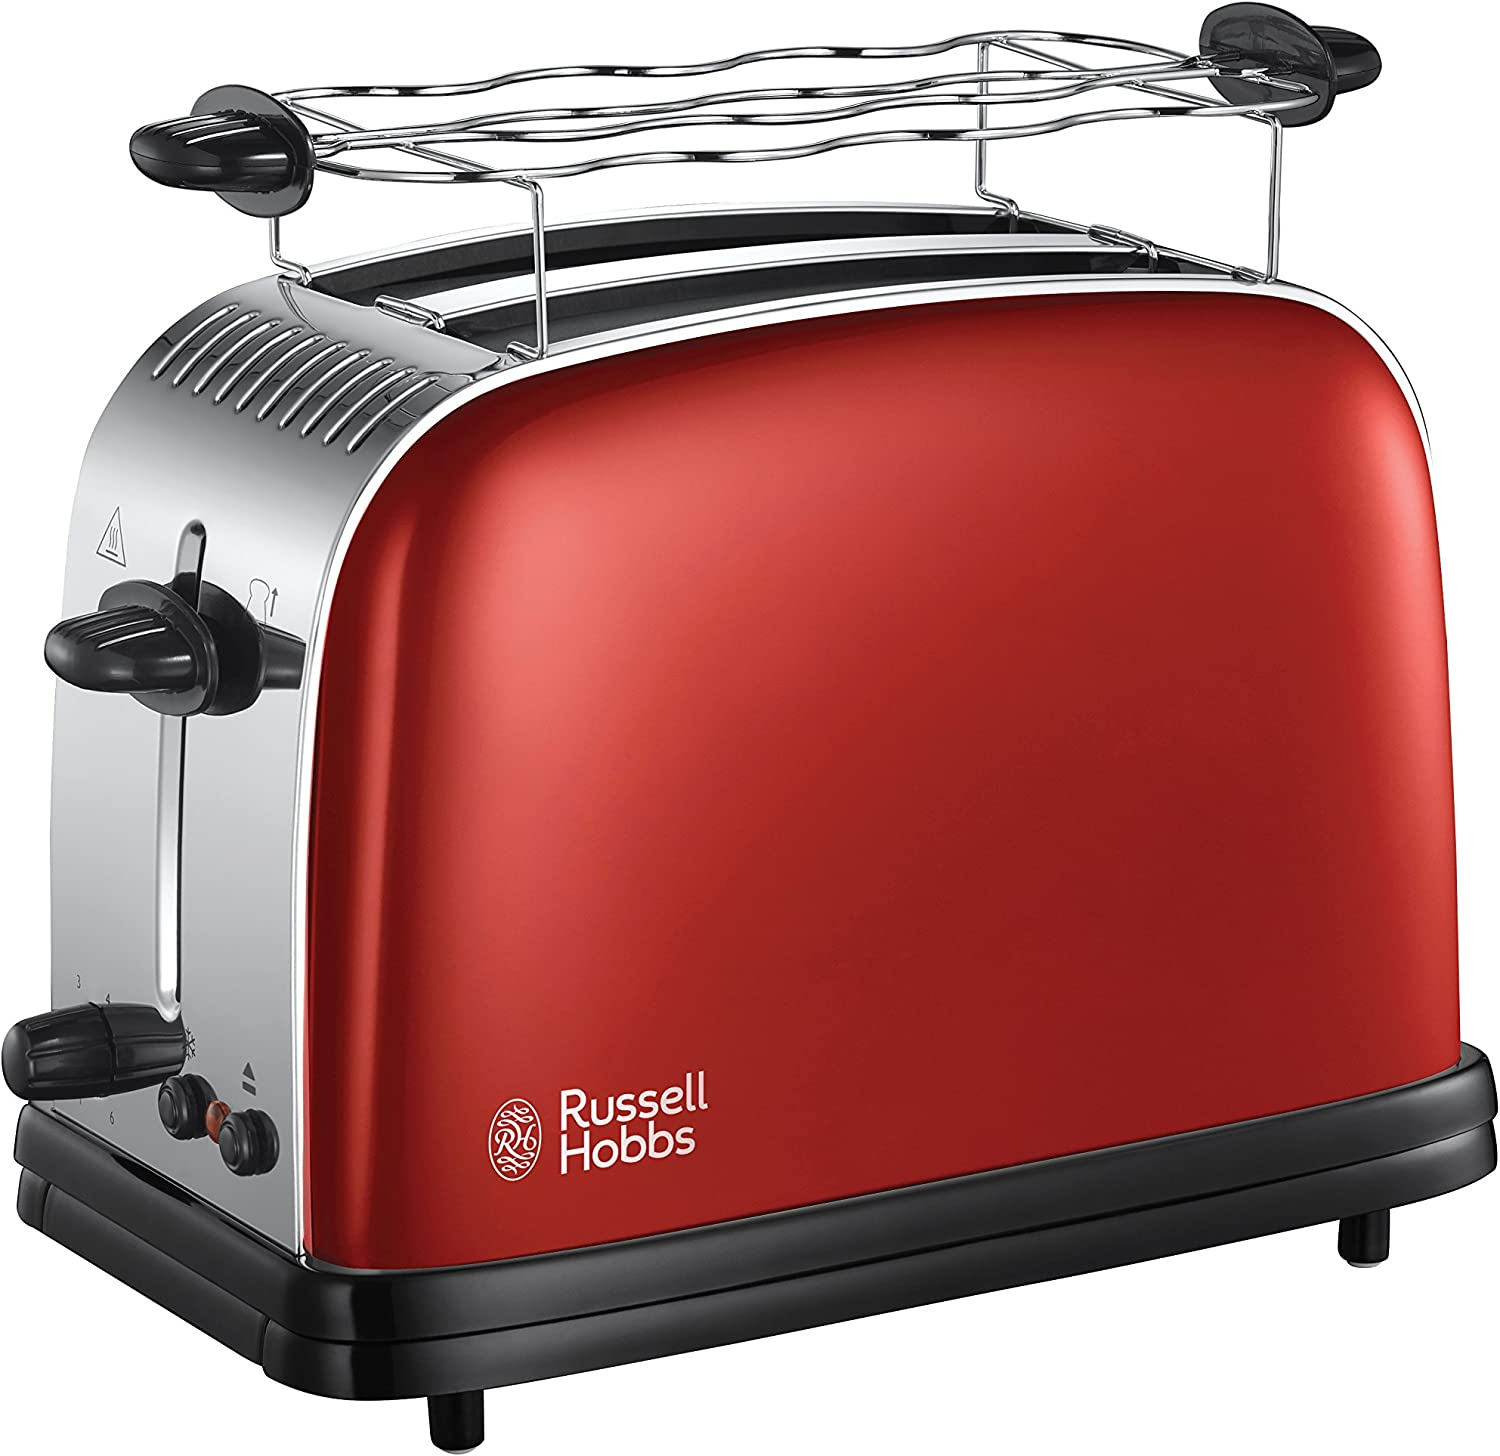 Russell Hobbs 21391 56 Toaster Grille Pain Colours, Fente